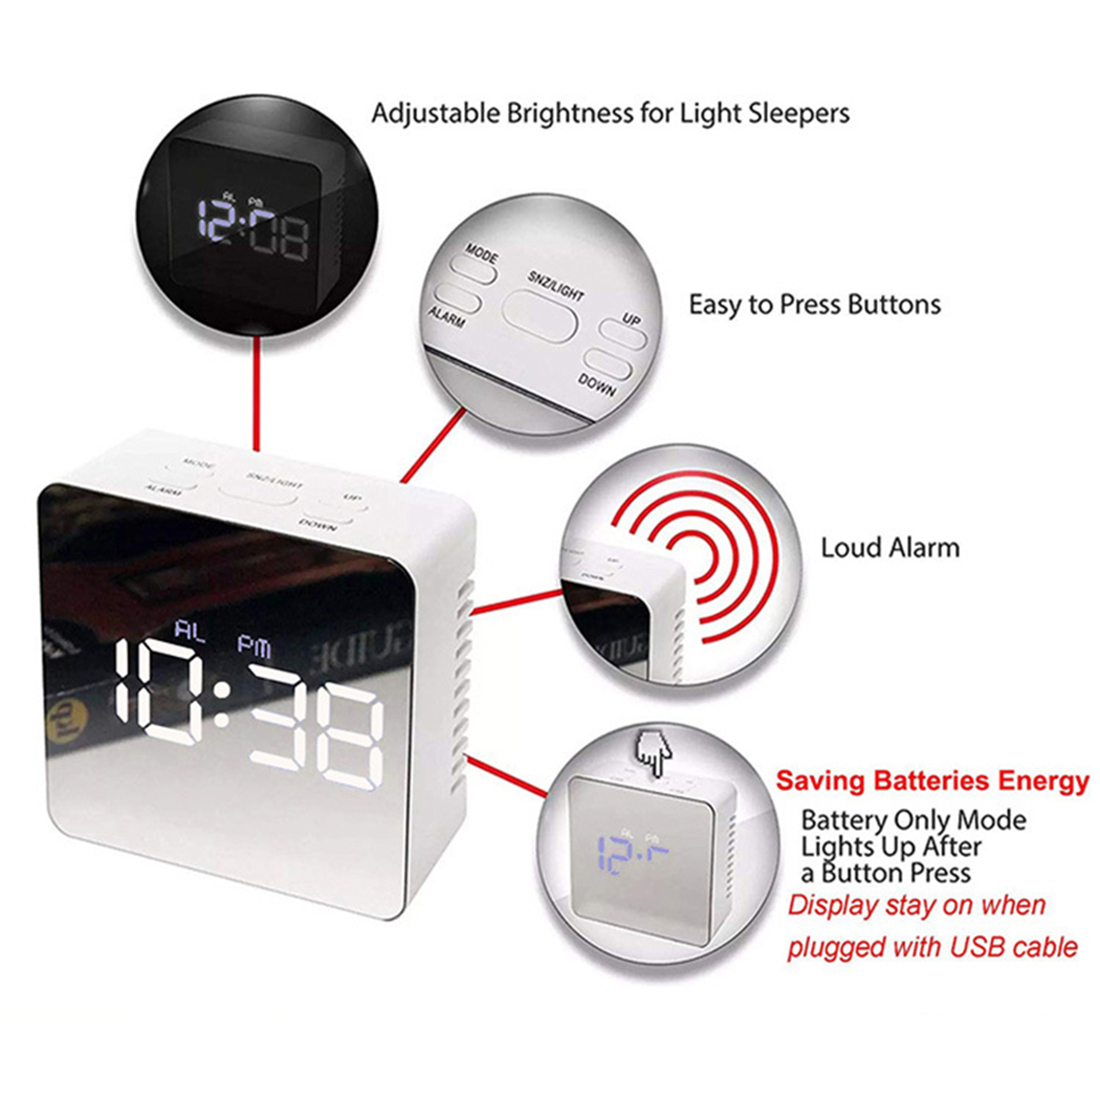 LED Mirror Alarm Clock with Dimmer and Snooze Function along with Temperature Display for Bedroom Office and Travel 3